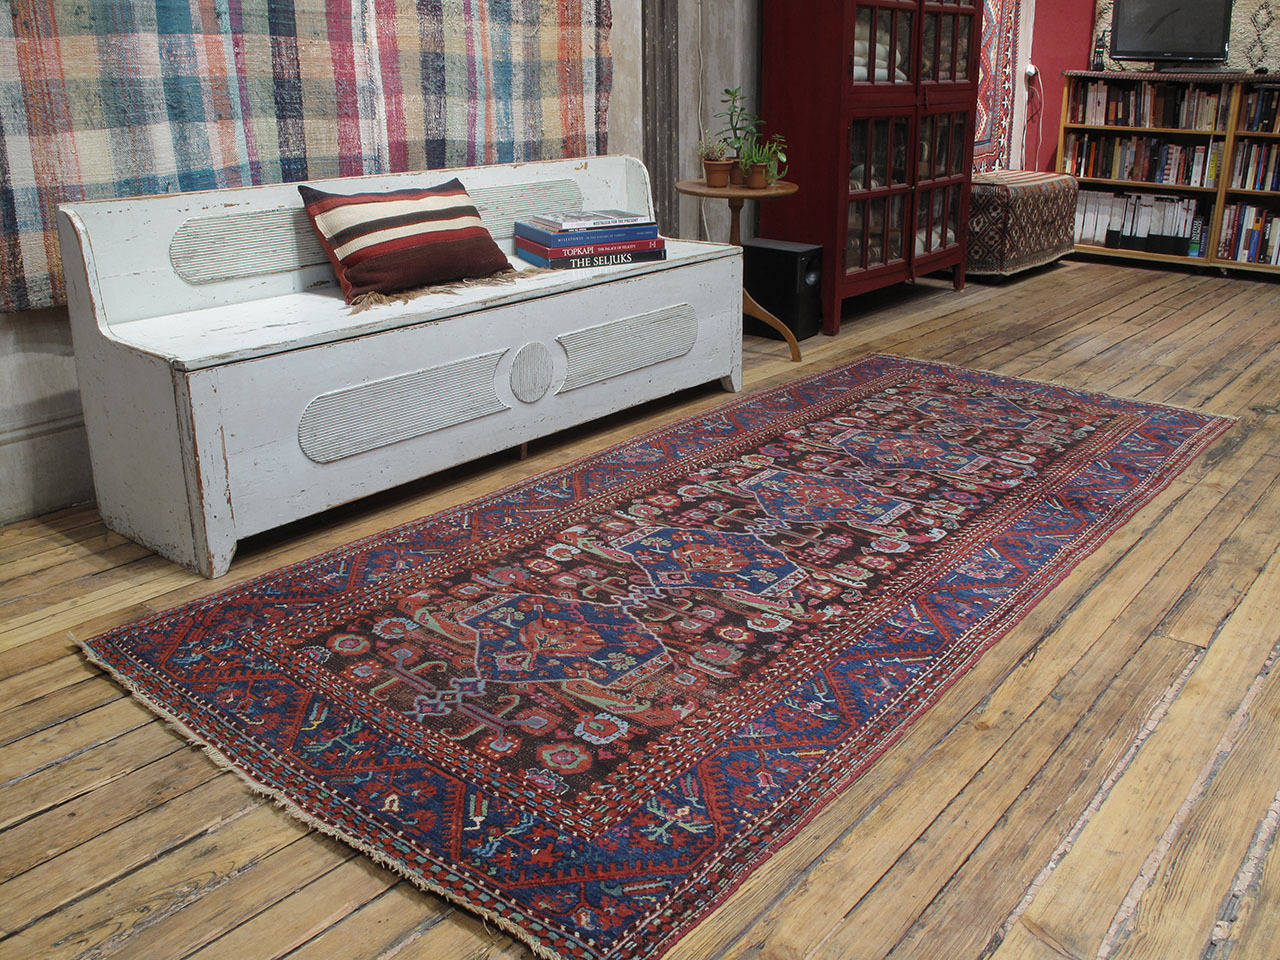 Antique Kula long runner rug. An older example of this well-known type of rug from one of the most prolific weaving centers of Western Turkey. With tulips and carnations and a profusion of other stylized floral forms, this antique village rug is a